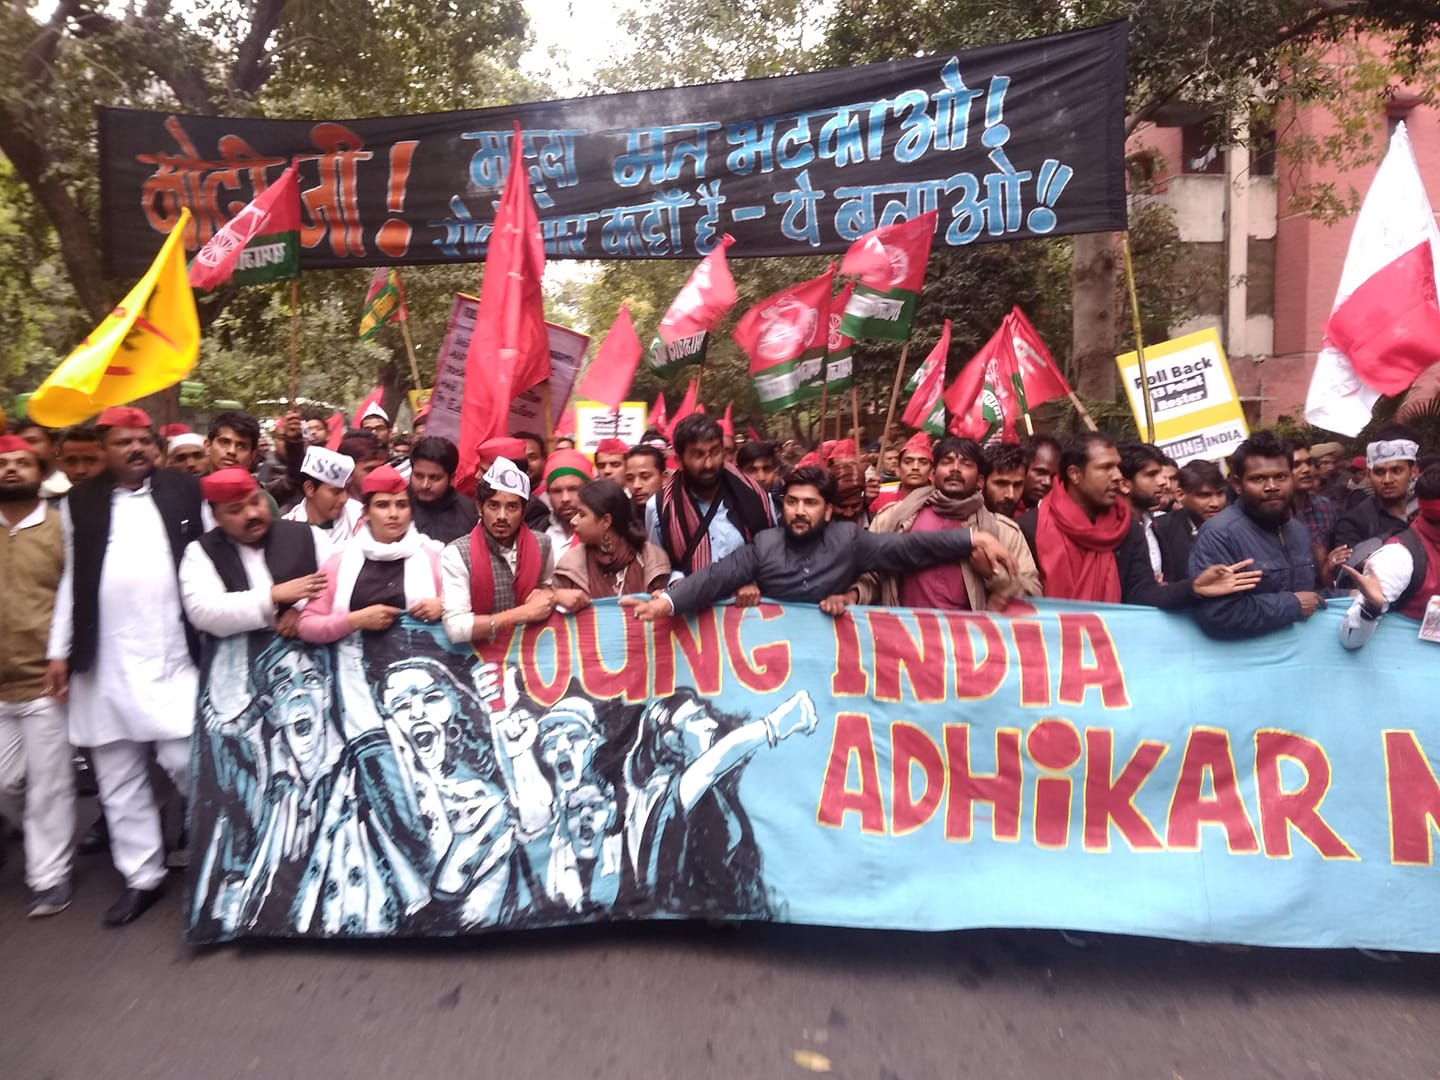 Young India Adhikar March: 'Selling Paan And Pakode is Not Employment""